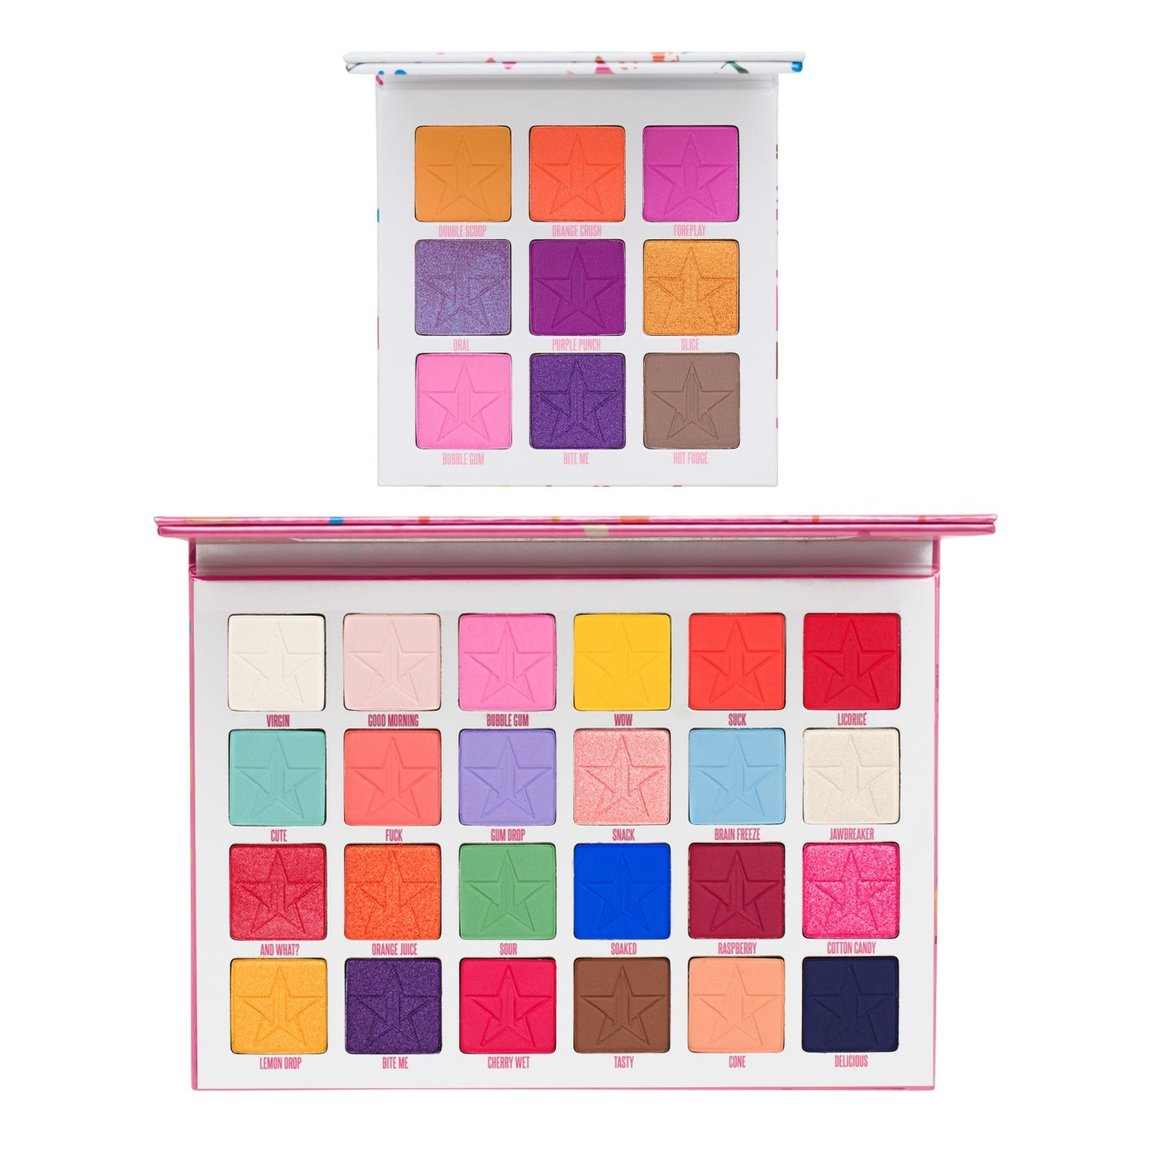 Jeffree Star Cosmetics Jawbreaker & Mini Breaker Eyeshadow Palette Bundle product smear.